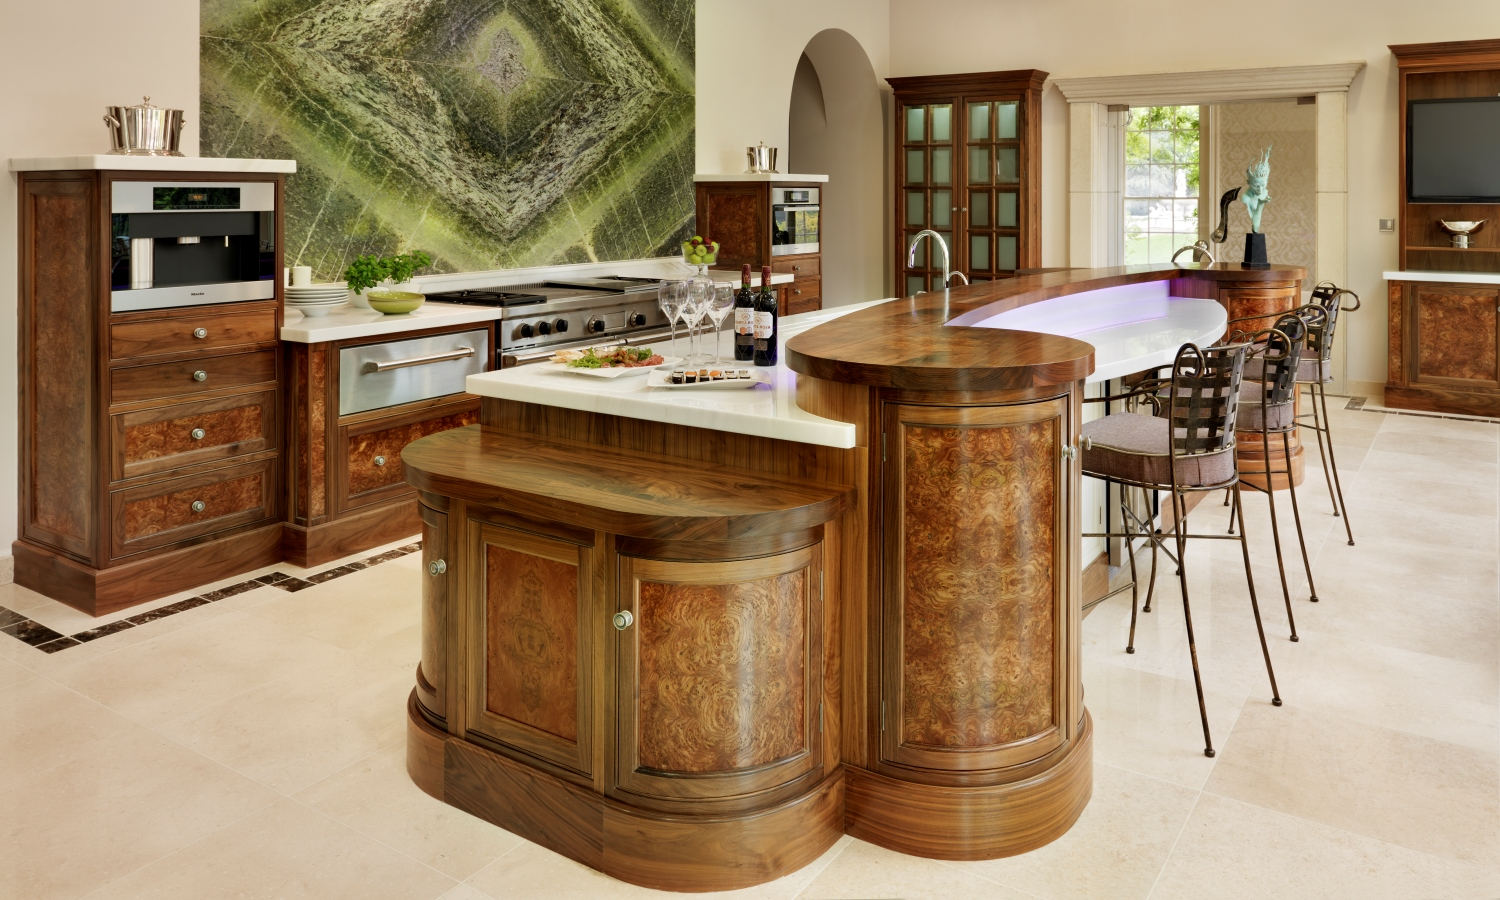 Edwardian Kitchen Charles Yorke Kitchens Are Handcrafted Using The Best Materials